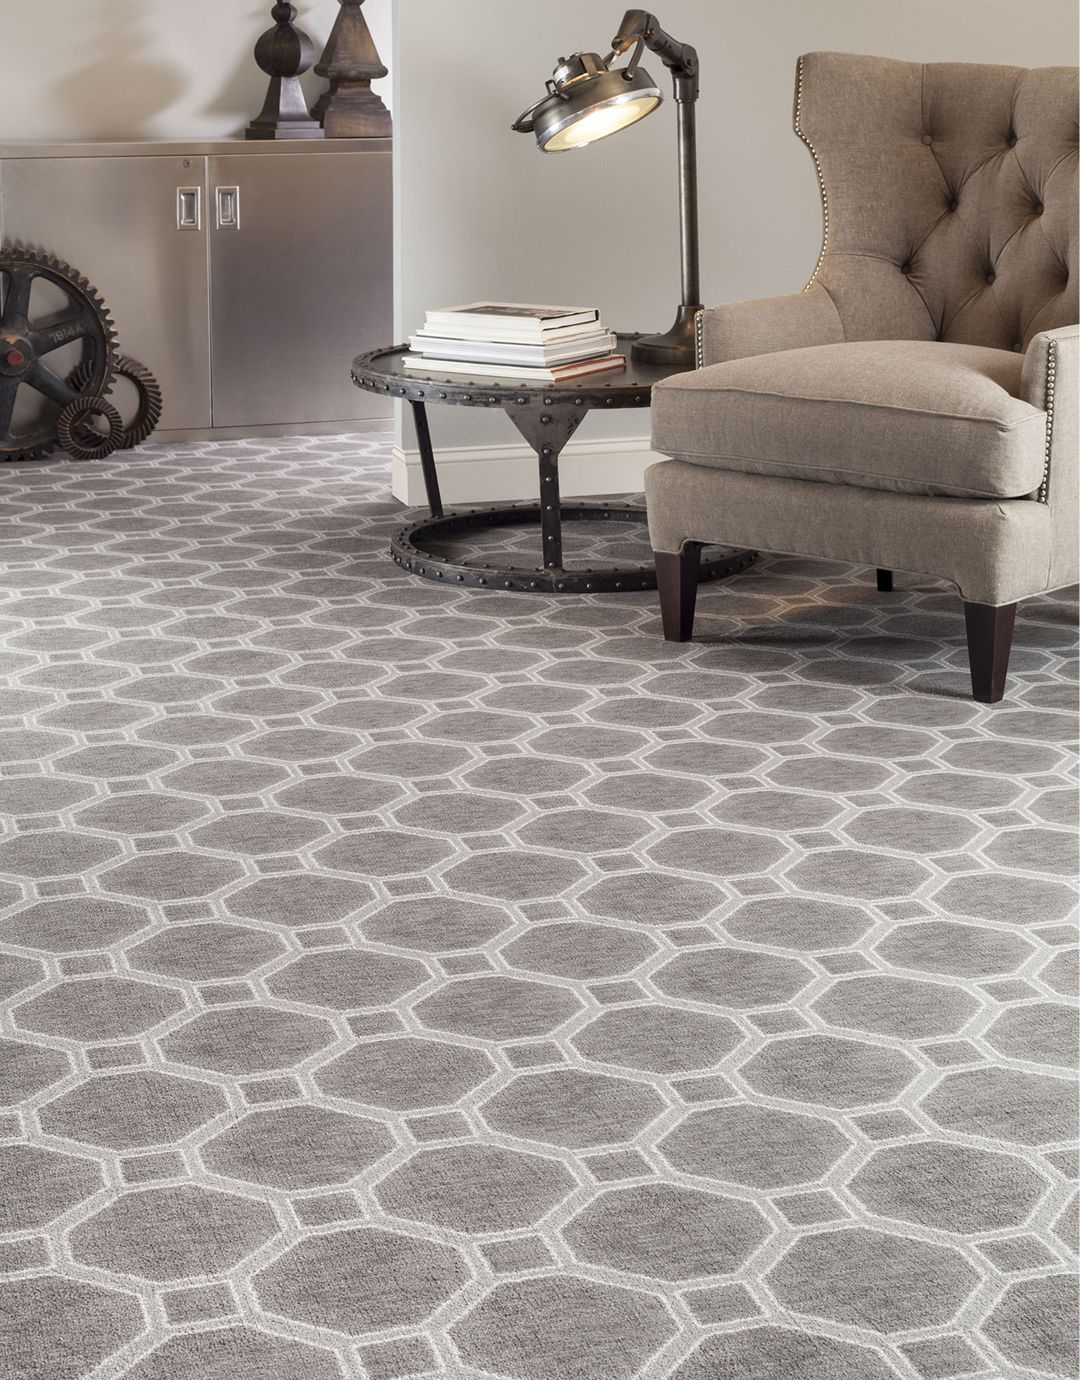 If Your Style Is More Industrial Patterned Carpet Can Add A